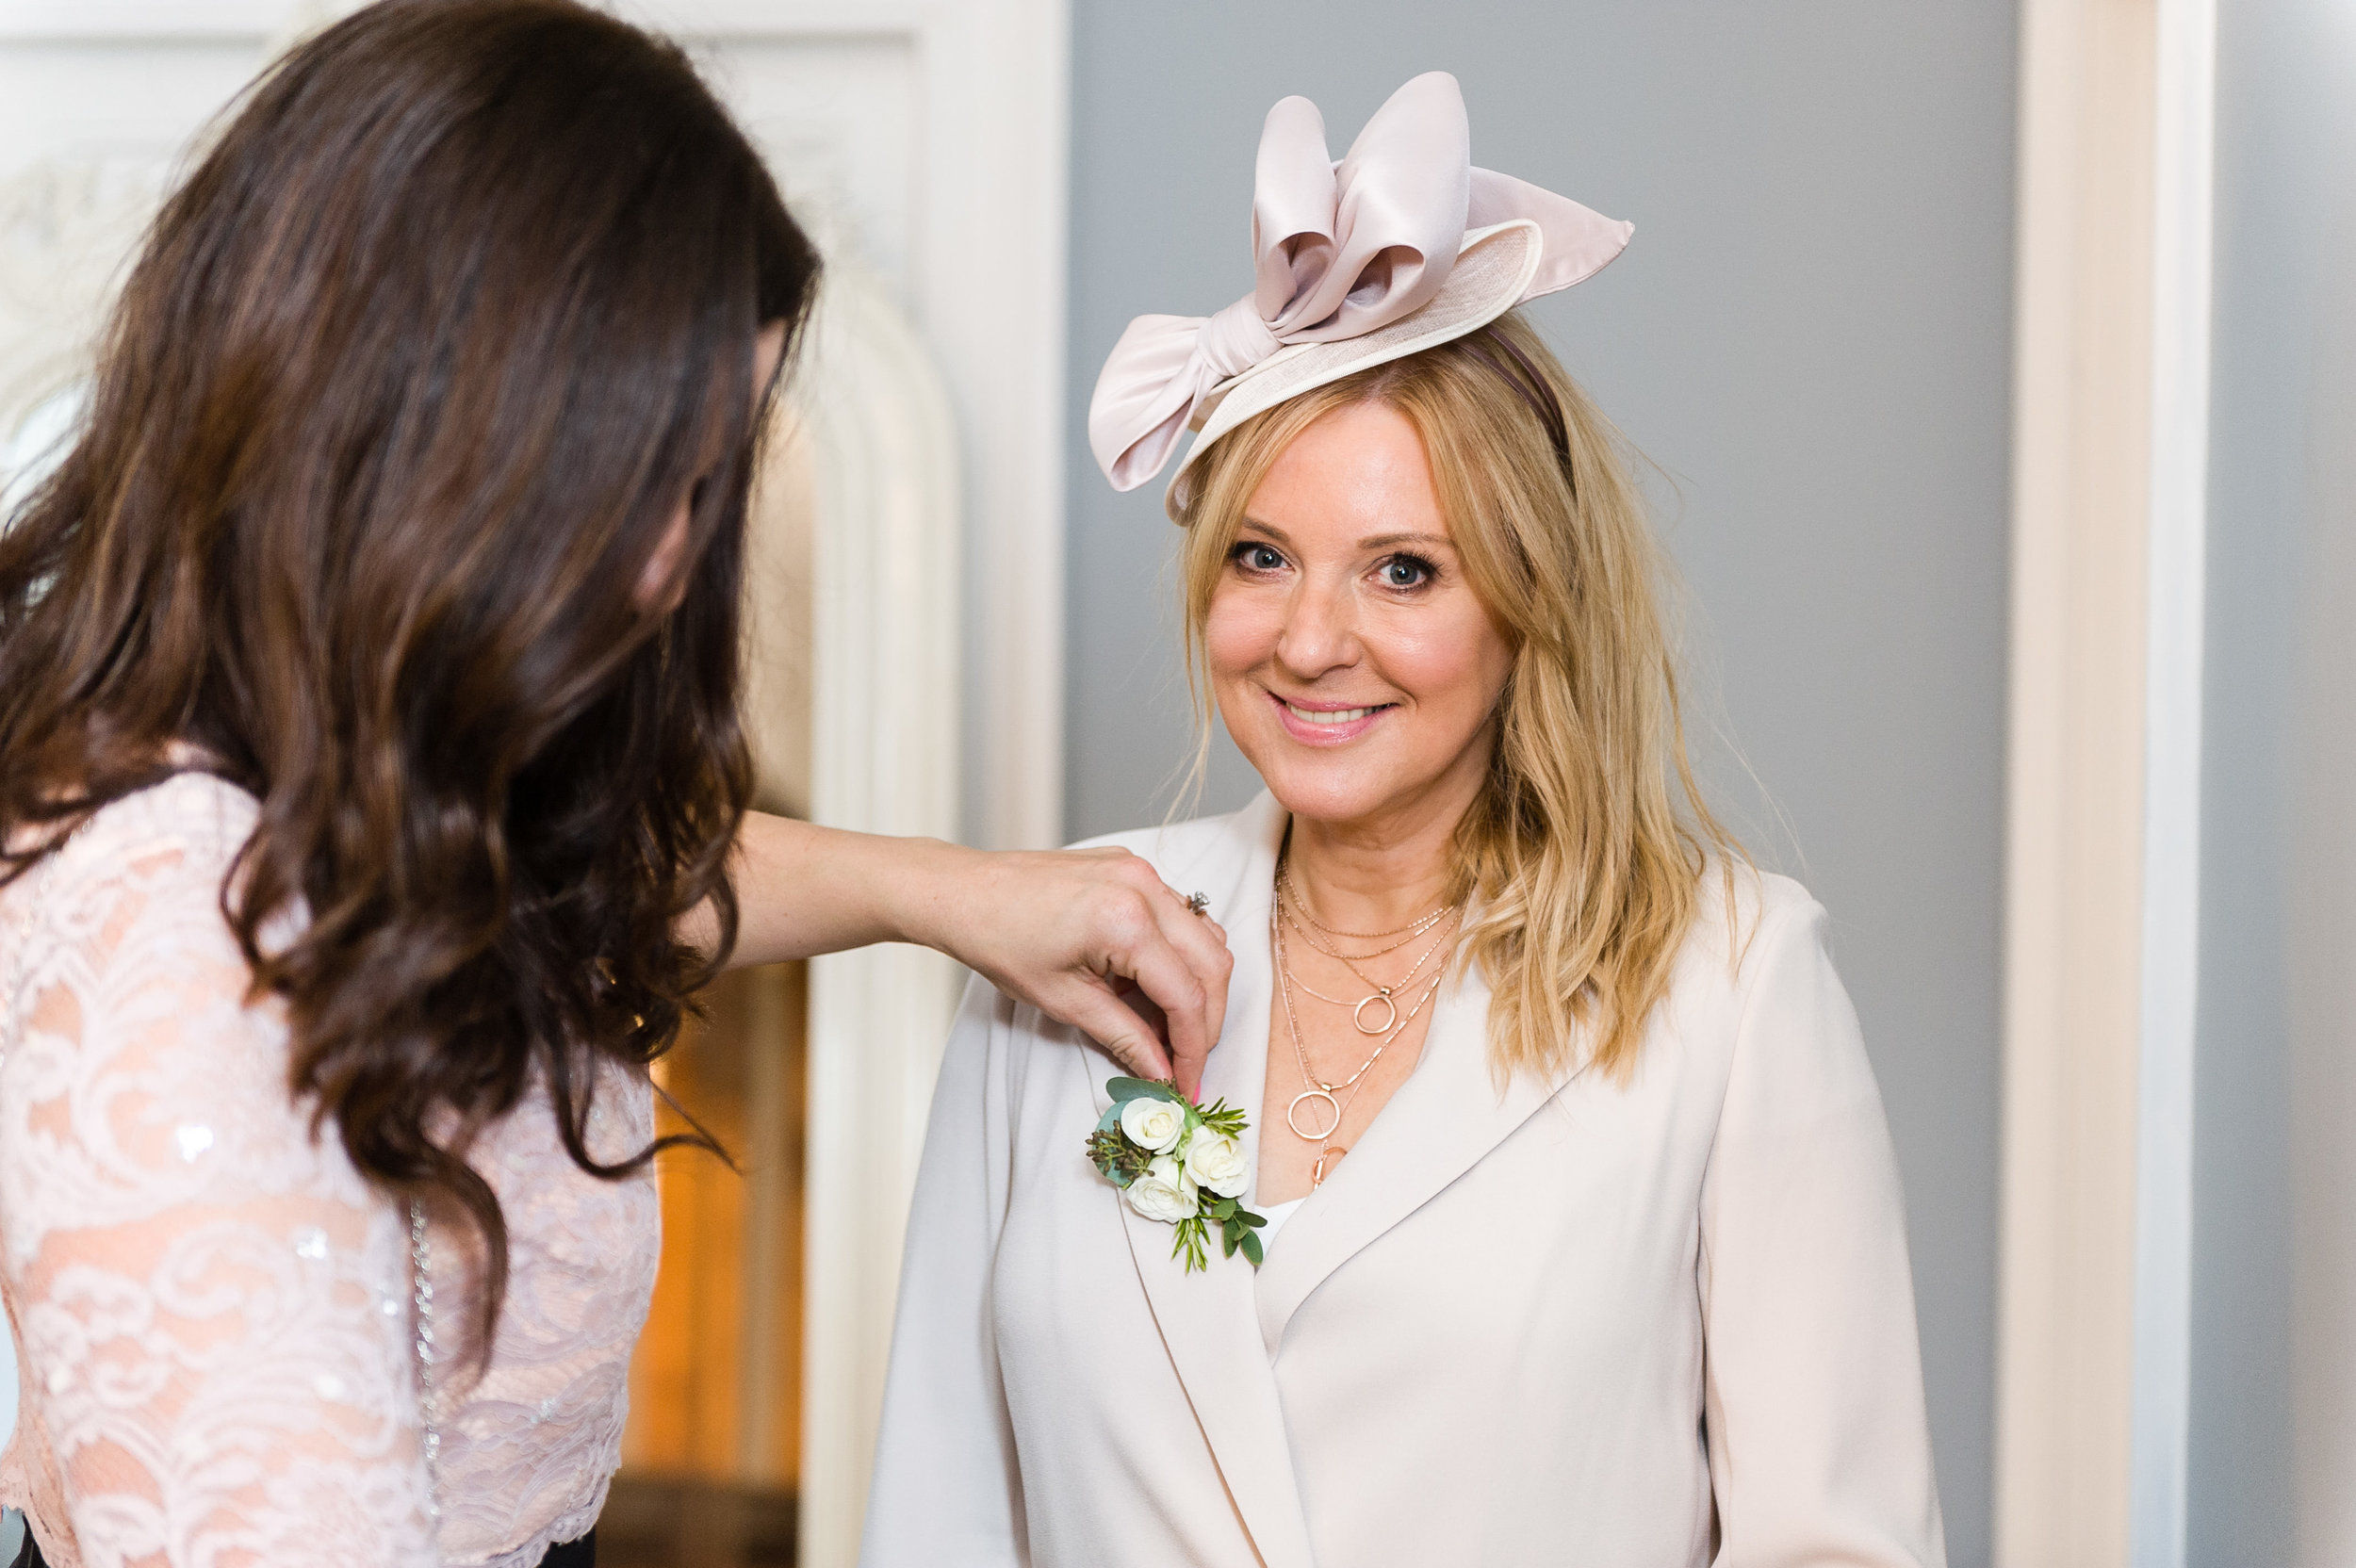 Kerry from Tineke pinning Mother of the Bride's corsage